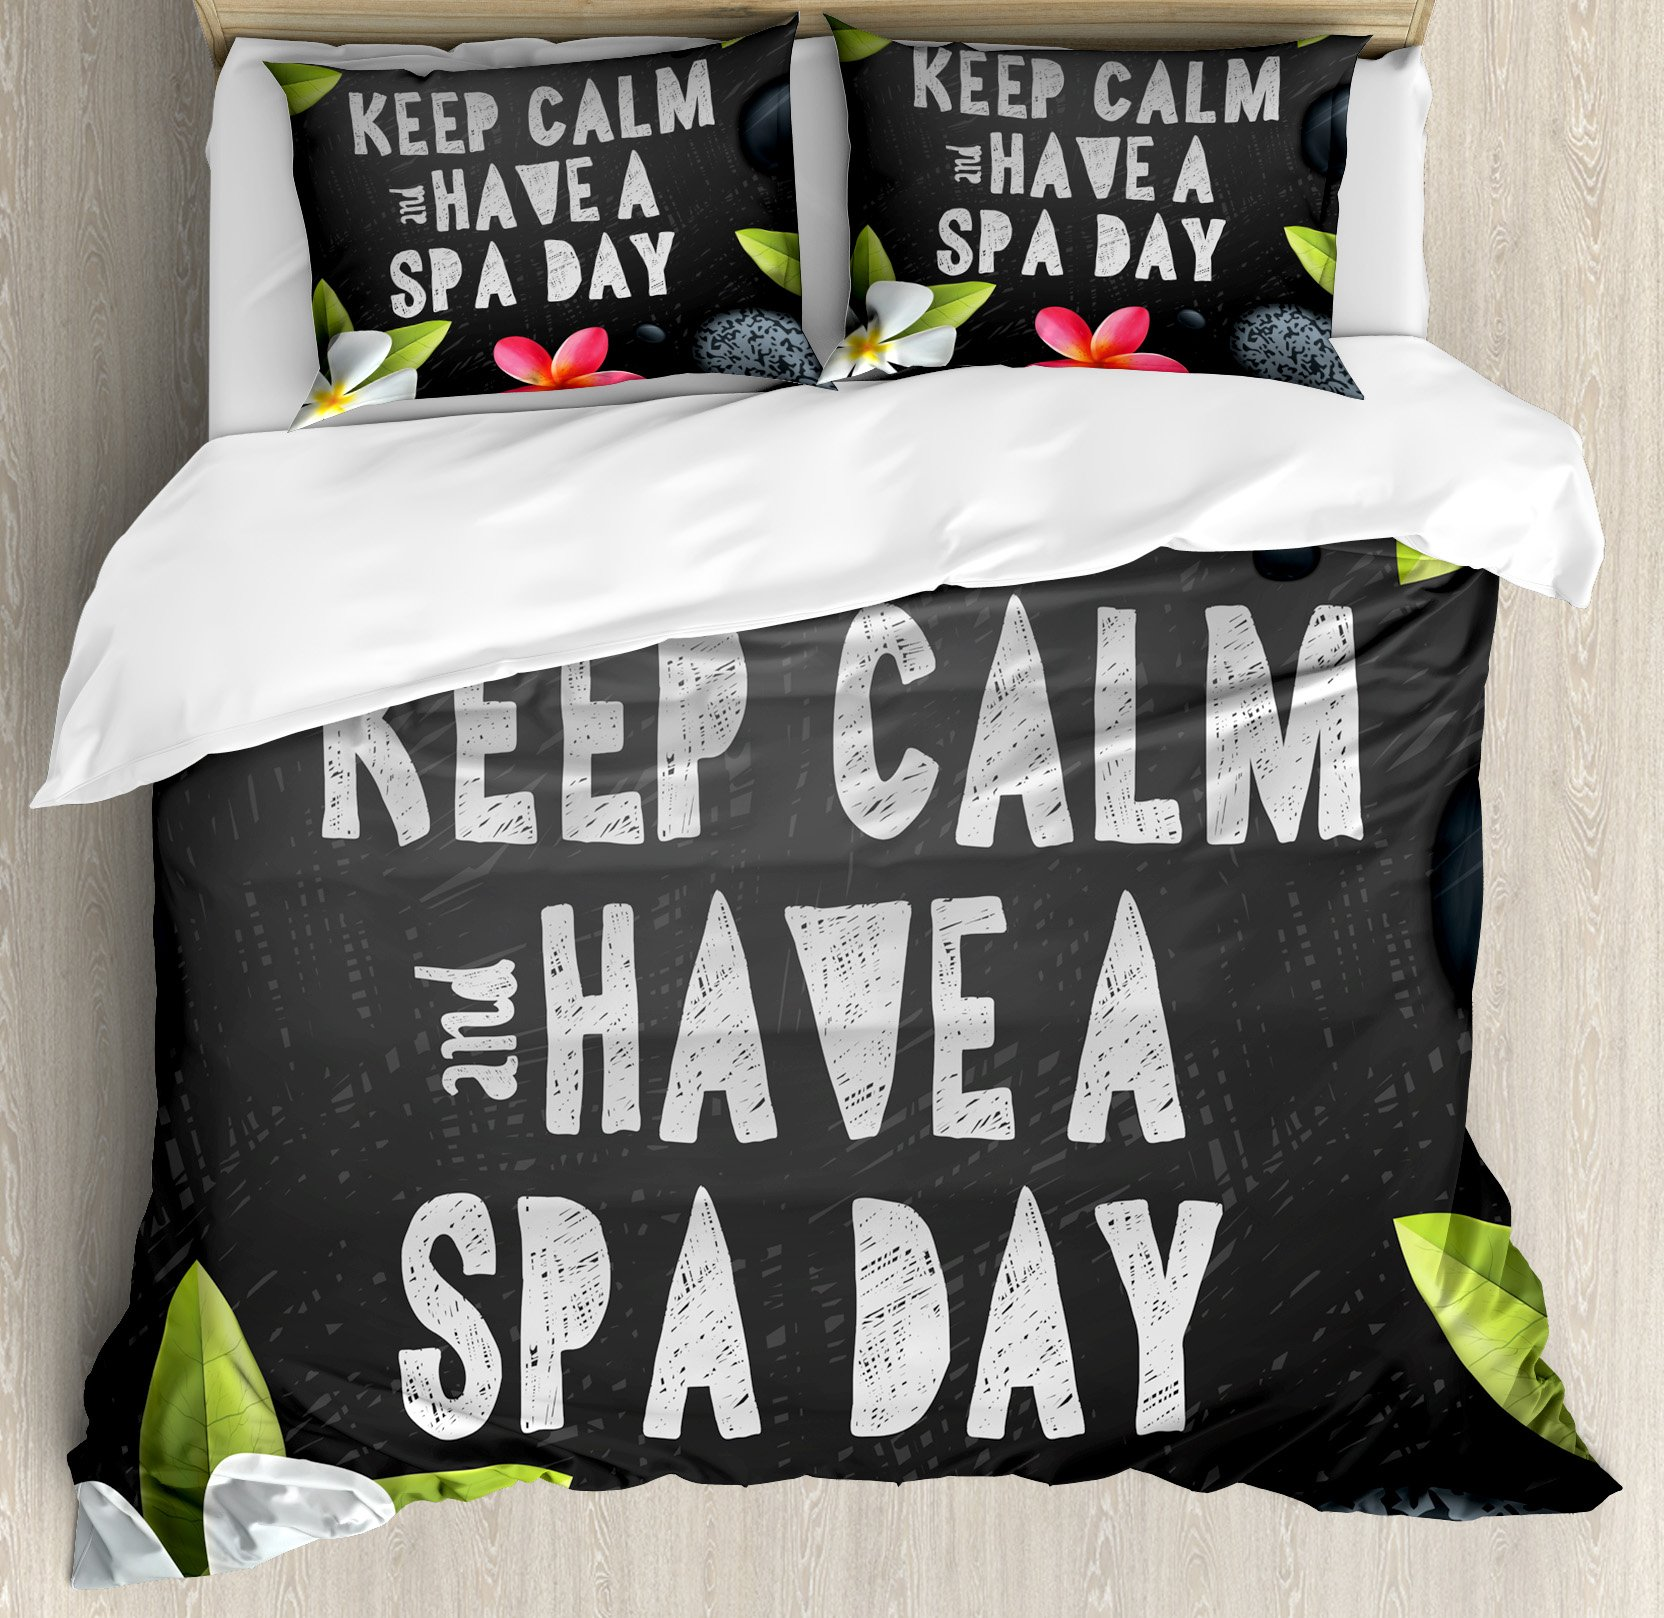 Ambesonne Zen King Size Duvet Cover Set by, Keep Calm Have a Spa Day Quote Healthcare and Beauty Treatment Graphic Stones Flowers, Decorative 3 Piece Bedding Set with 2 Pillow Shams, Multicolor